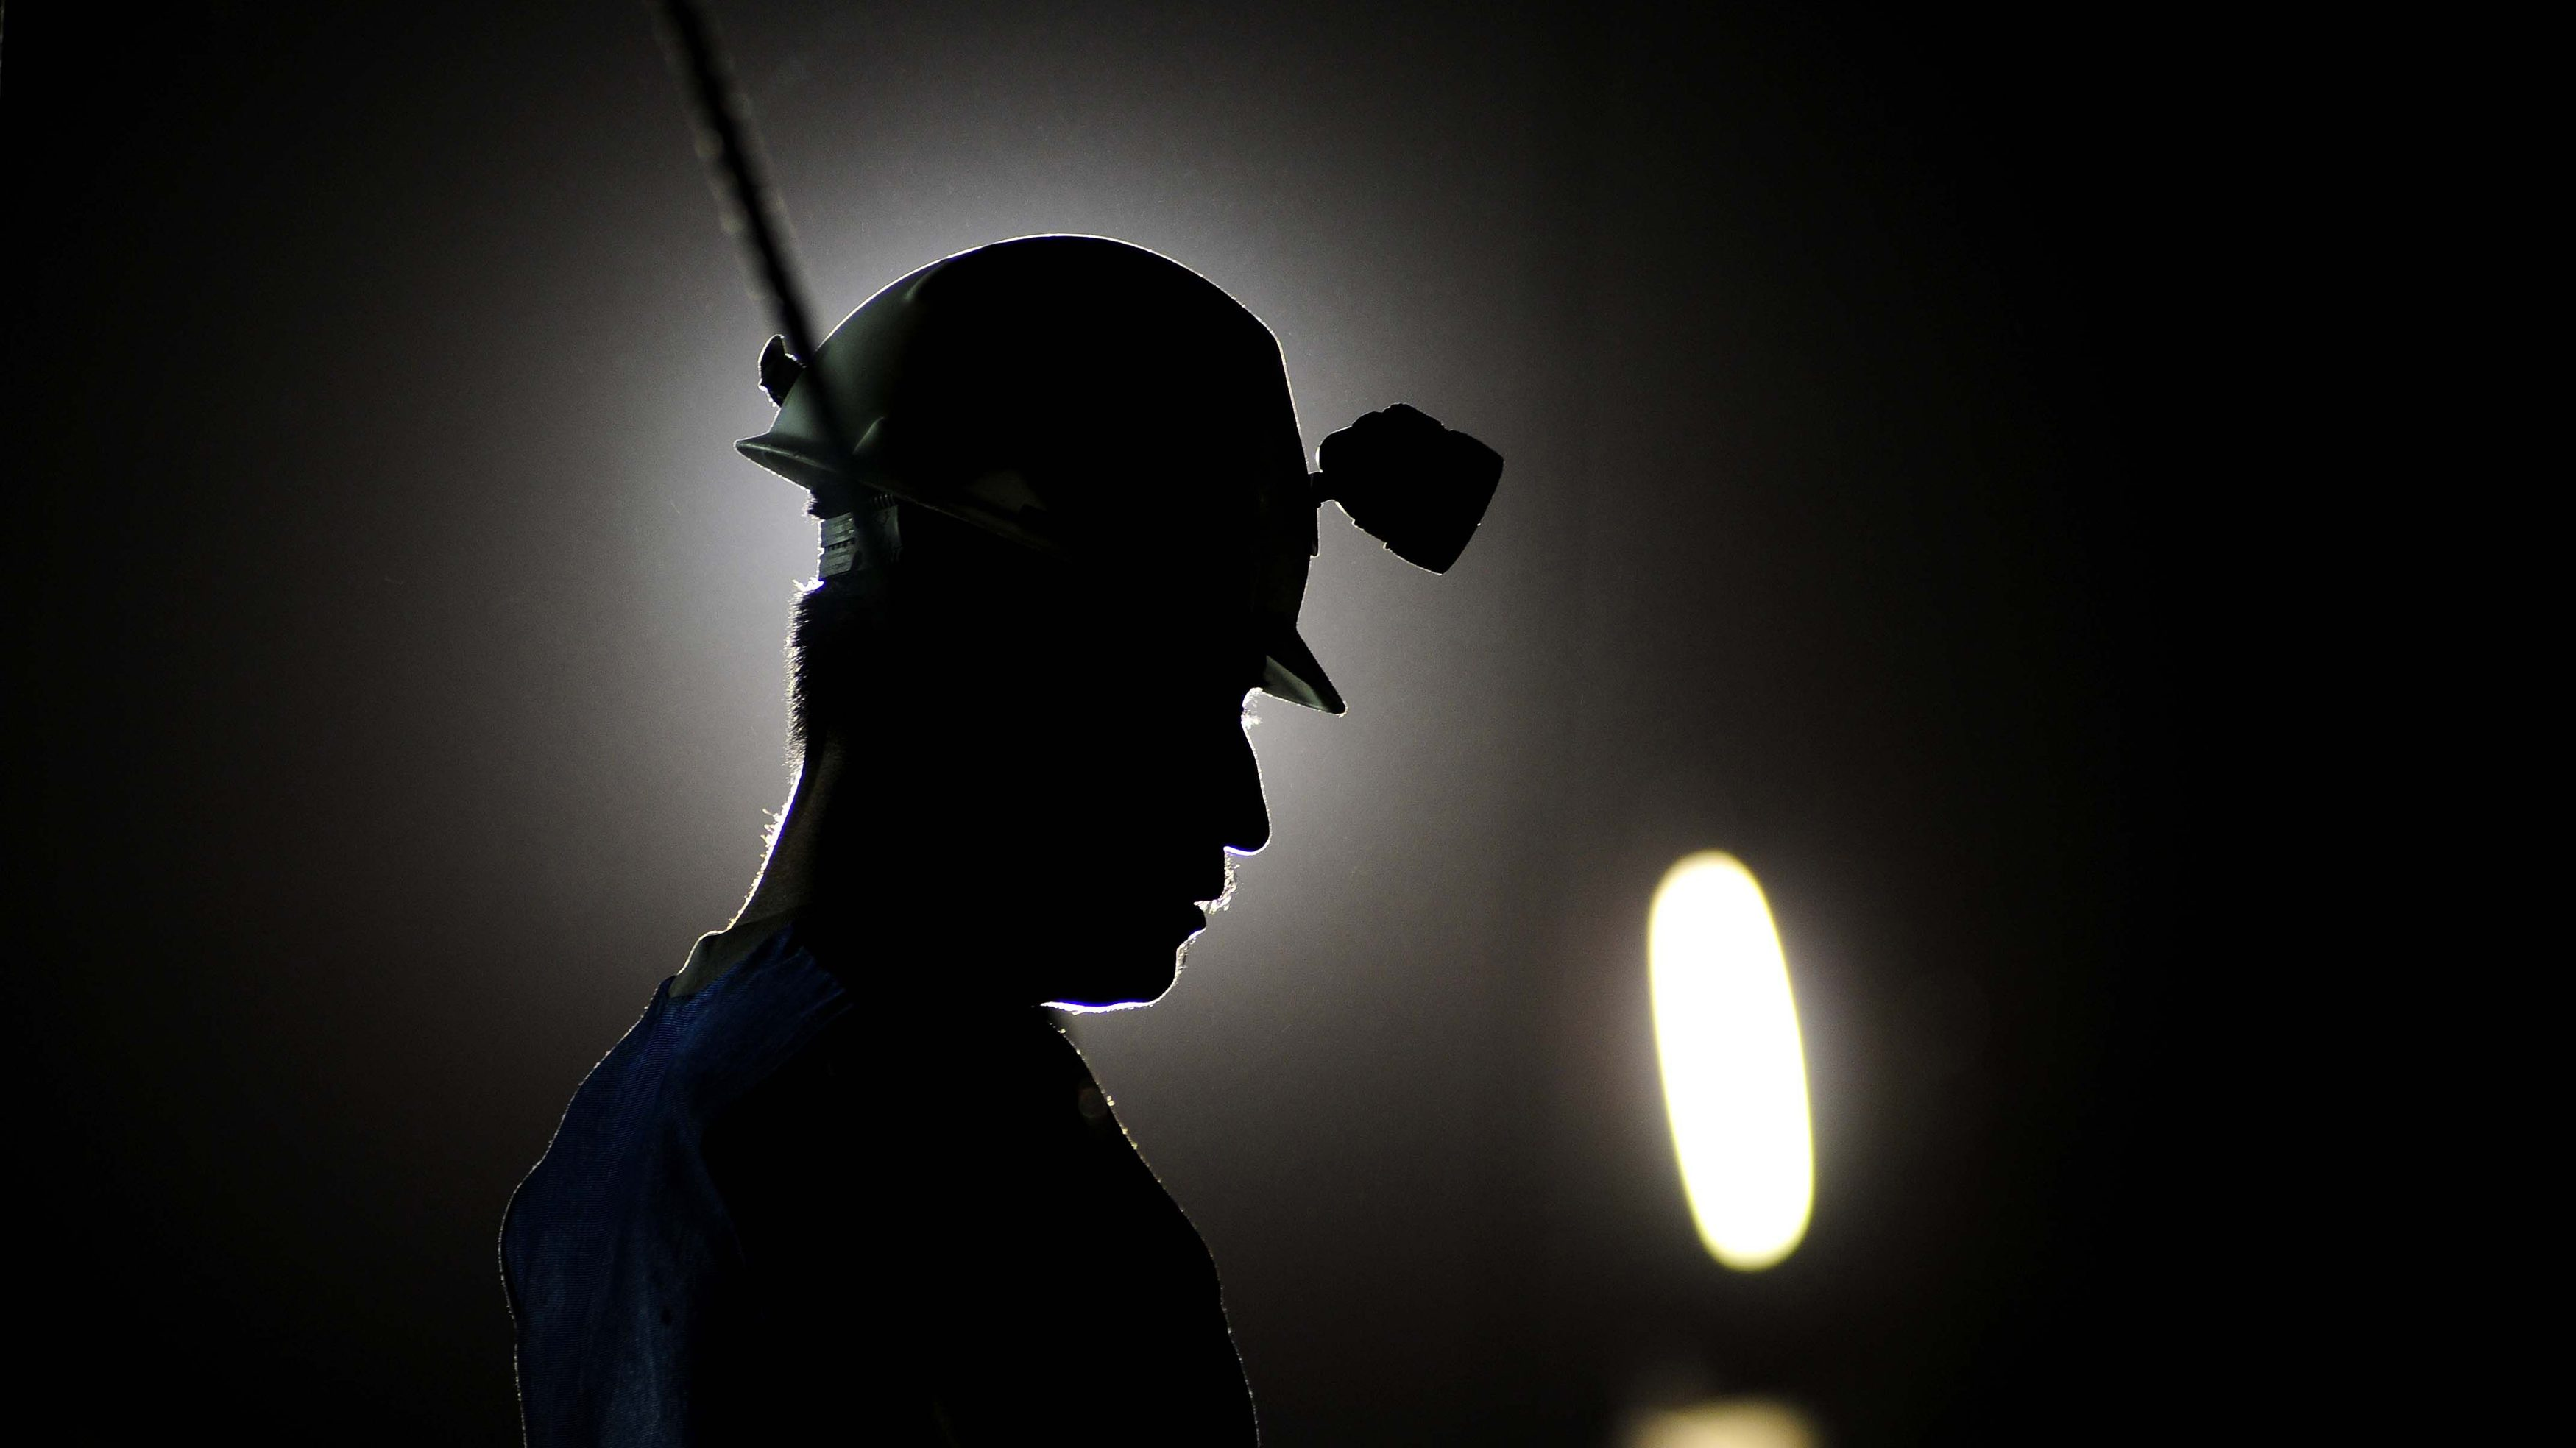 A miner stands near a mine where rescue workers search for trapped colleagues in Sabinas May 3, 2011.  Mexican rescuers searched for nine miners feared dead on Wednesday, a day after a coal mine explosion caused by a build-up of methane gas killed five others, a reminder of dangers facing the thinly regulated industry. Picture taken May 3, 2011